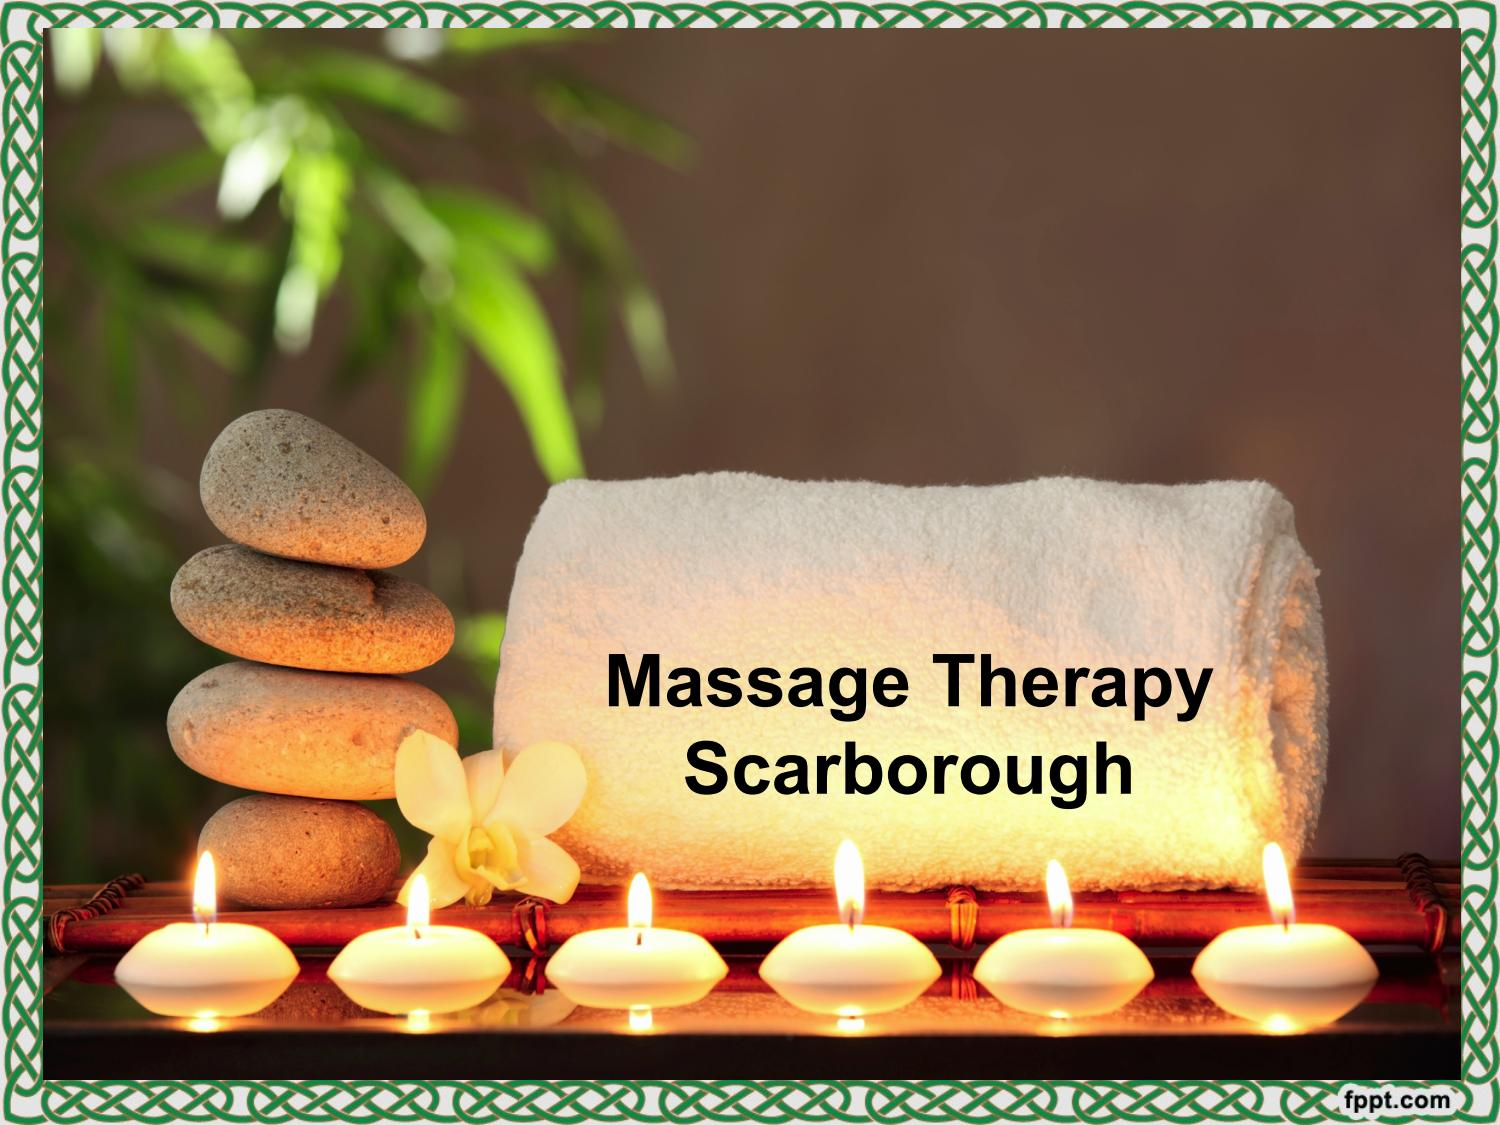 Massage Therapy Scarborough by Sun Spa & Wellness - issuu